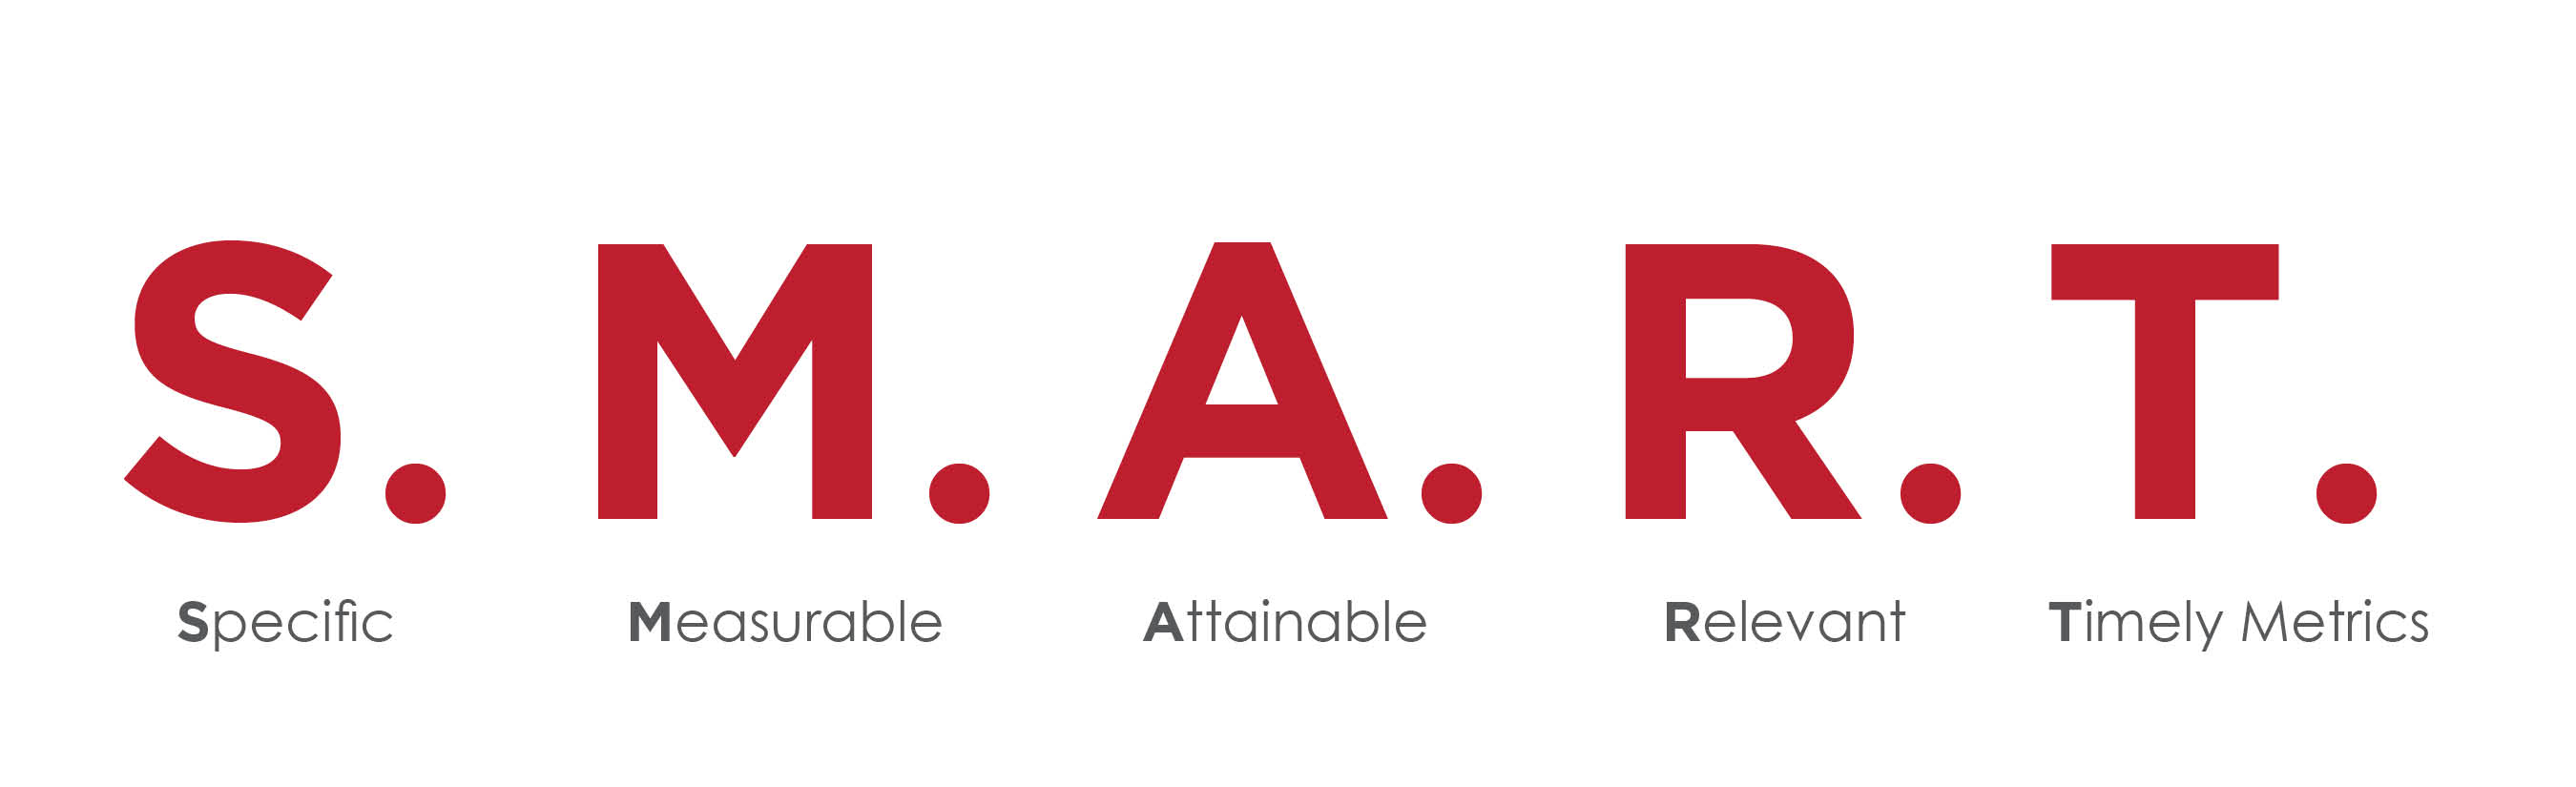 Red Carrot is SMART 8(a) Marketing Agency showing Specific Measurable Attainable Relevant Timely Metrics